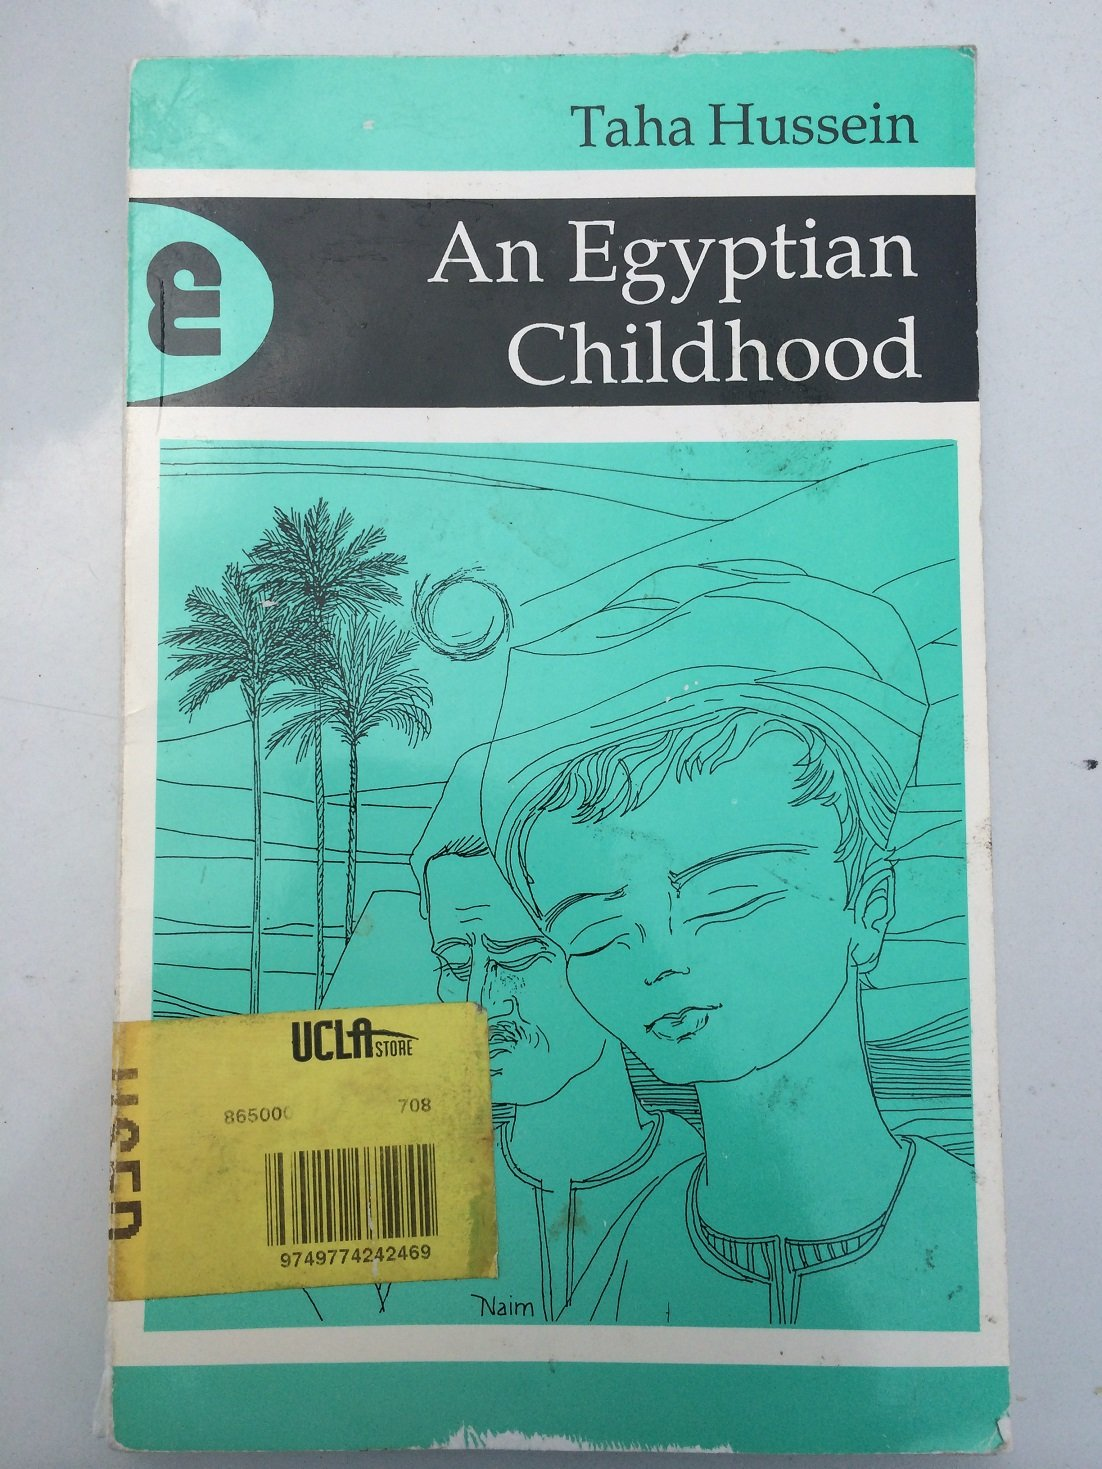 An Egyptian Childhood (Modern Arabic Writing) by Amer Univ in Cairo Pr